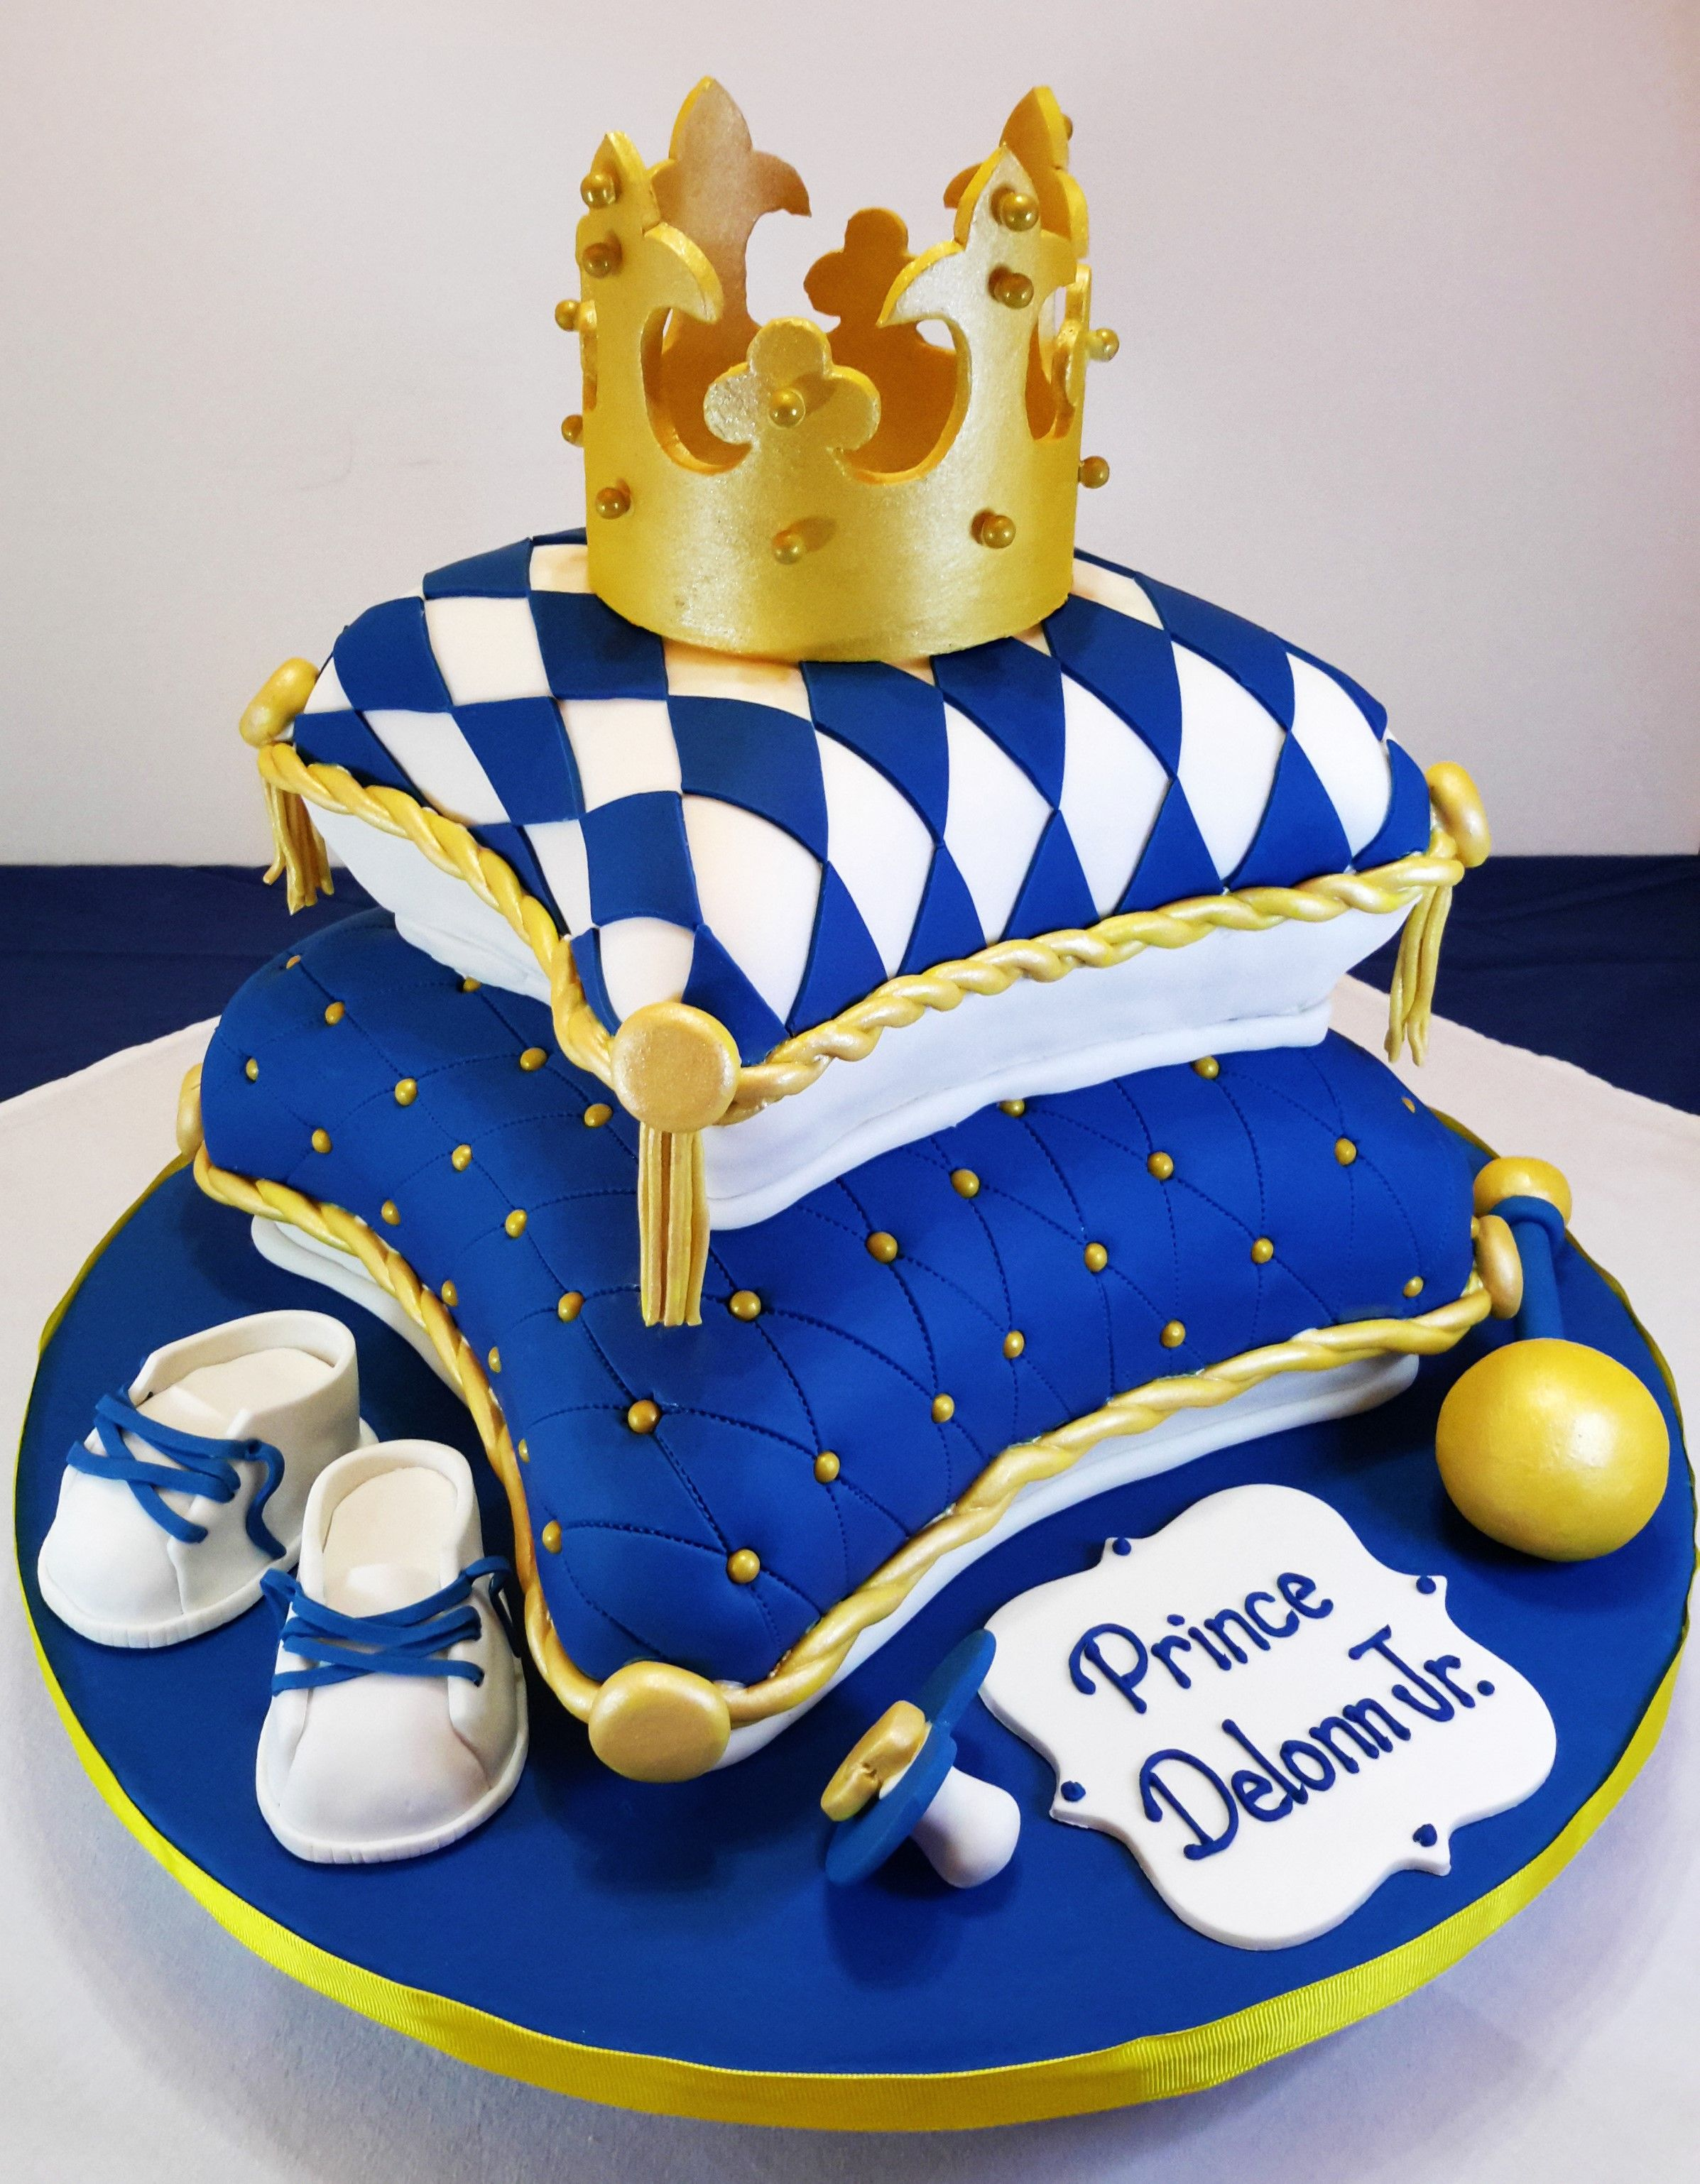 Beautiful Royal Blue And Gold Baby Shower Pillow Cake!